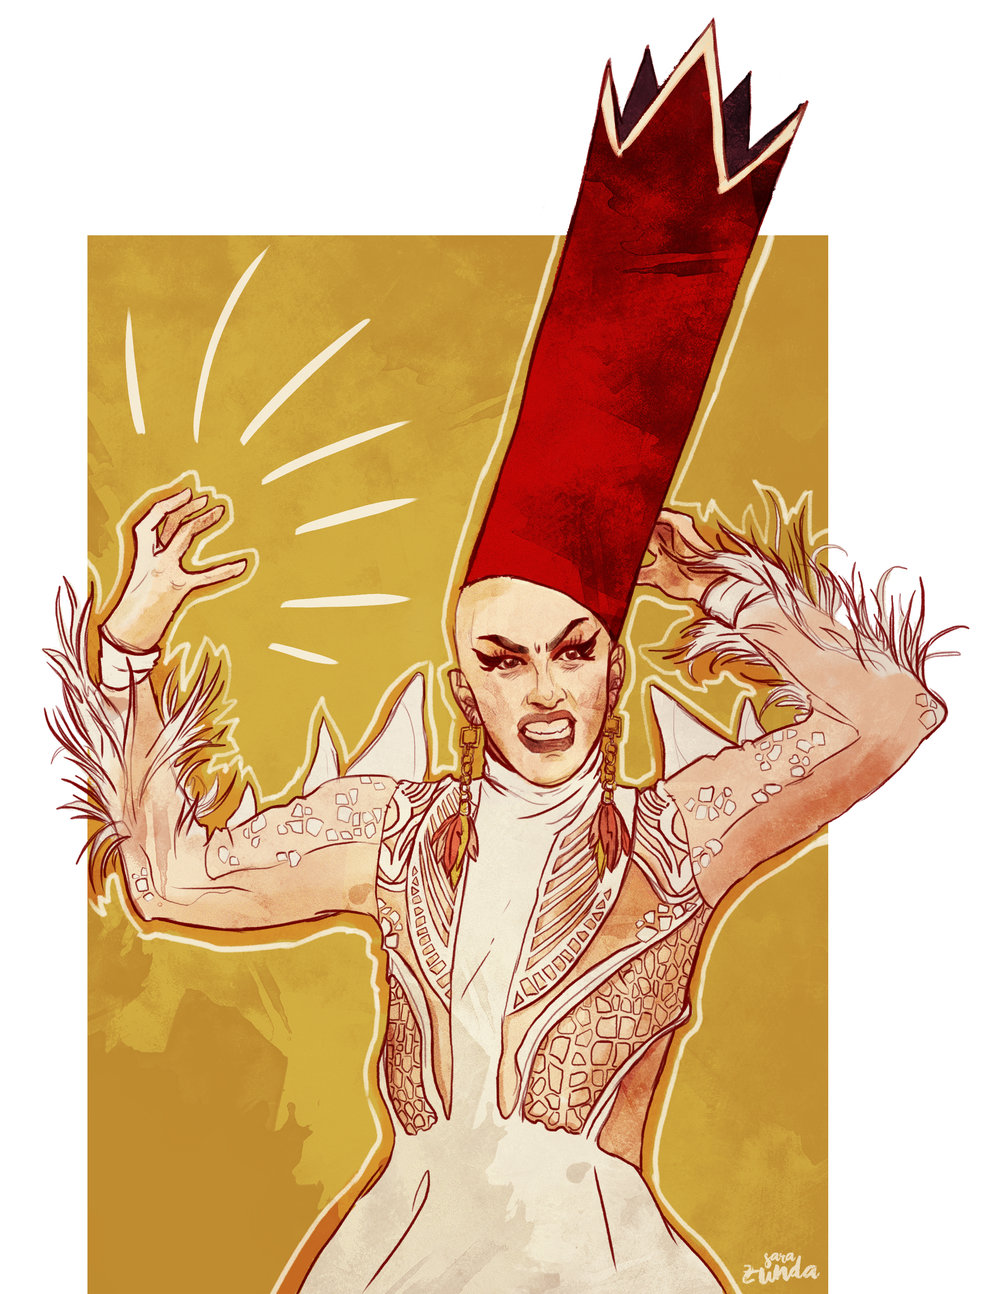 Velour  Portrait of American drag queen and artist, Sasha Velour